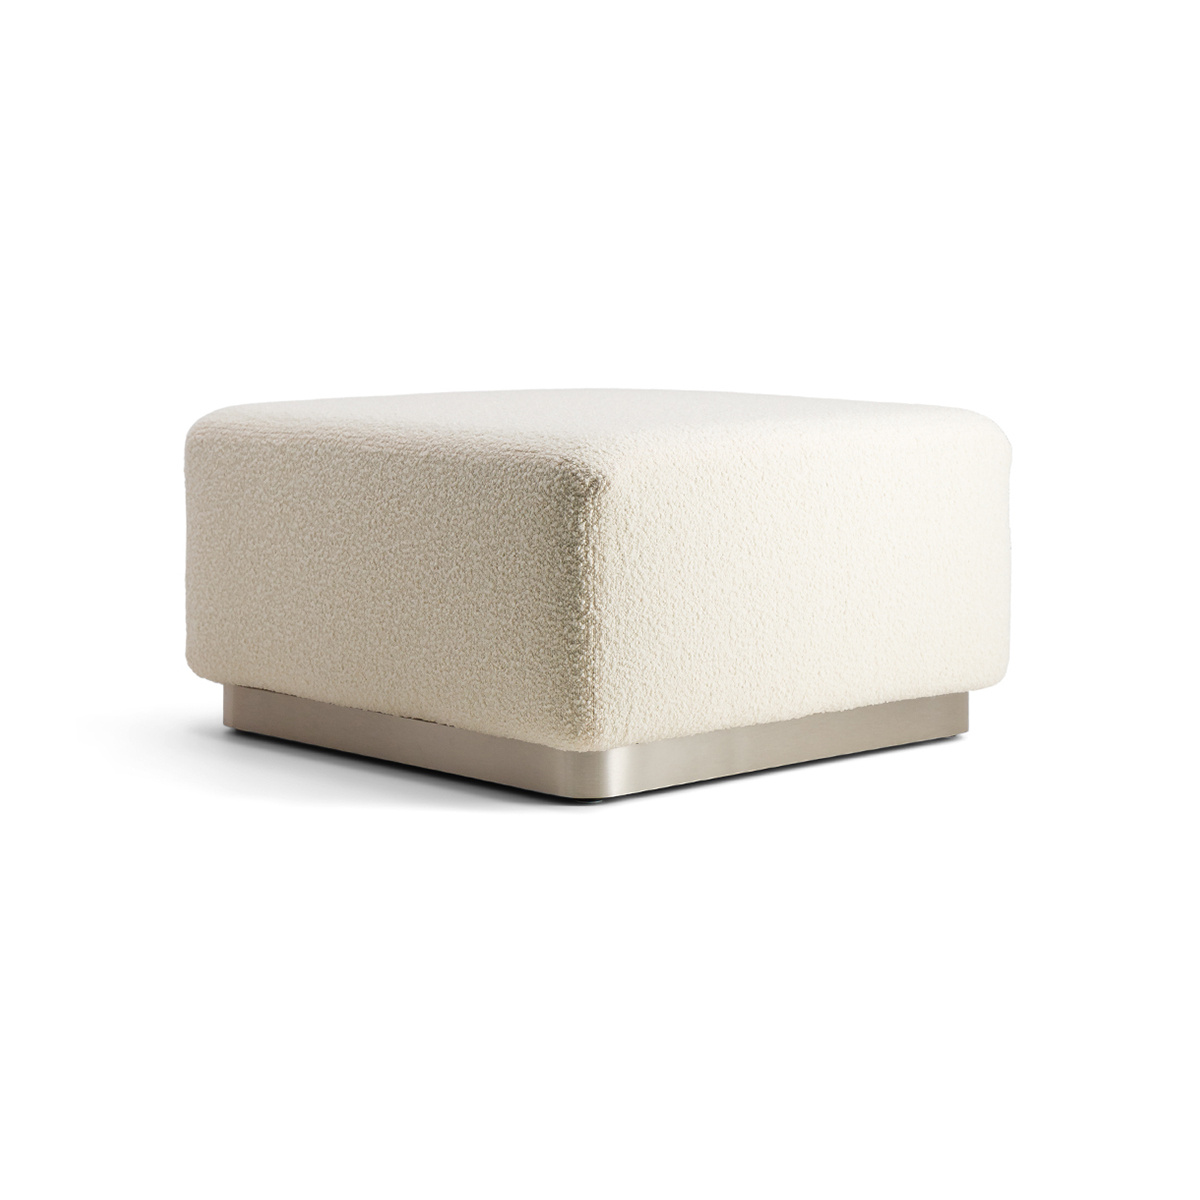 Rotondo Footstool in Cream White Curly Wool